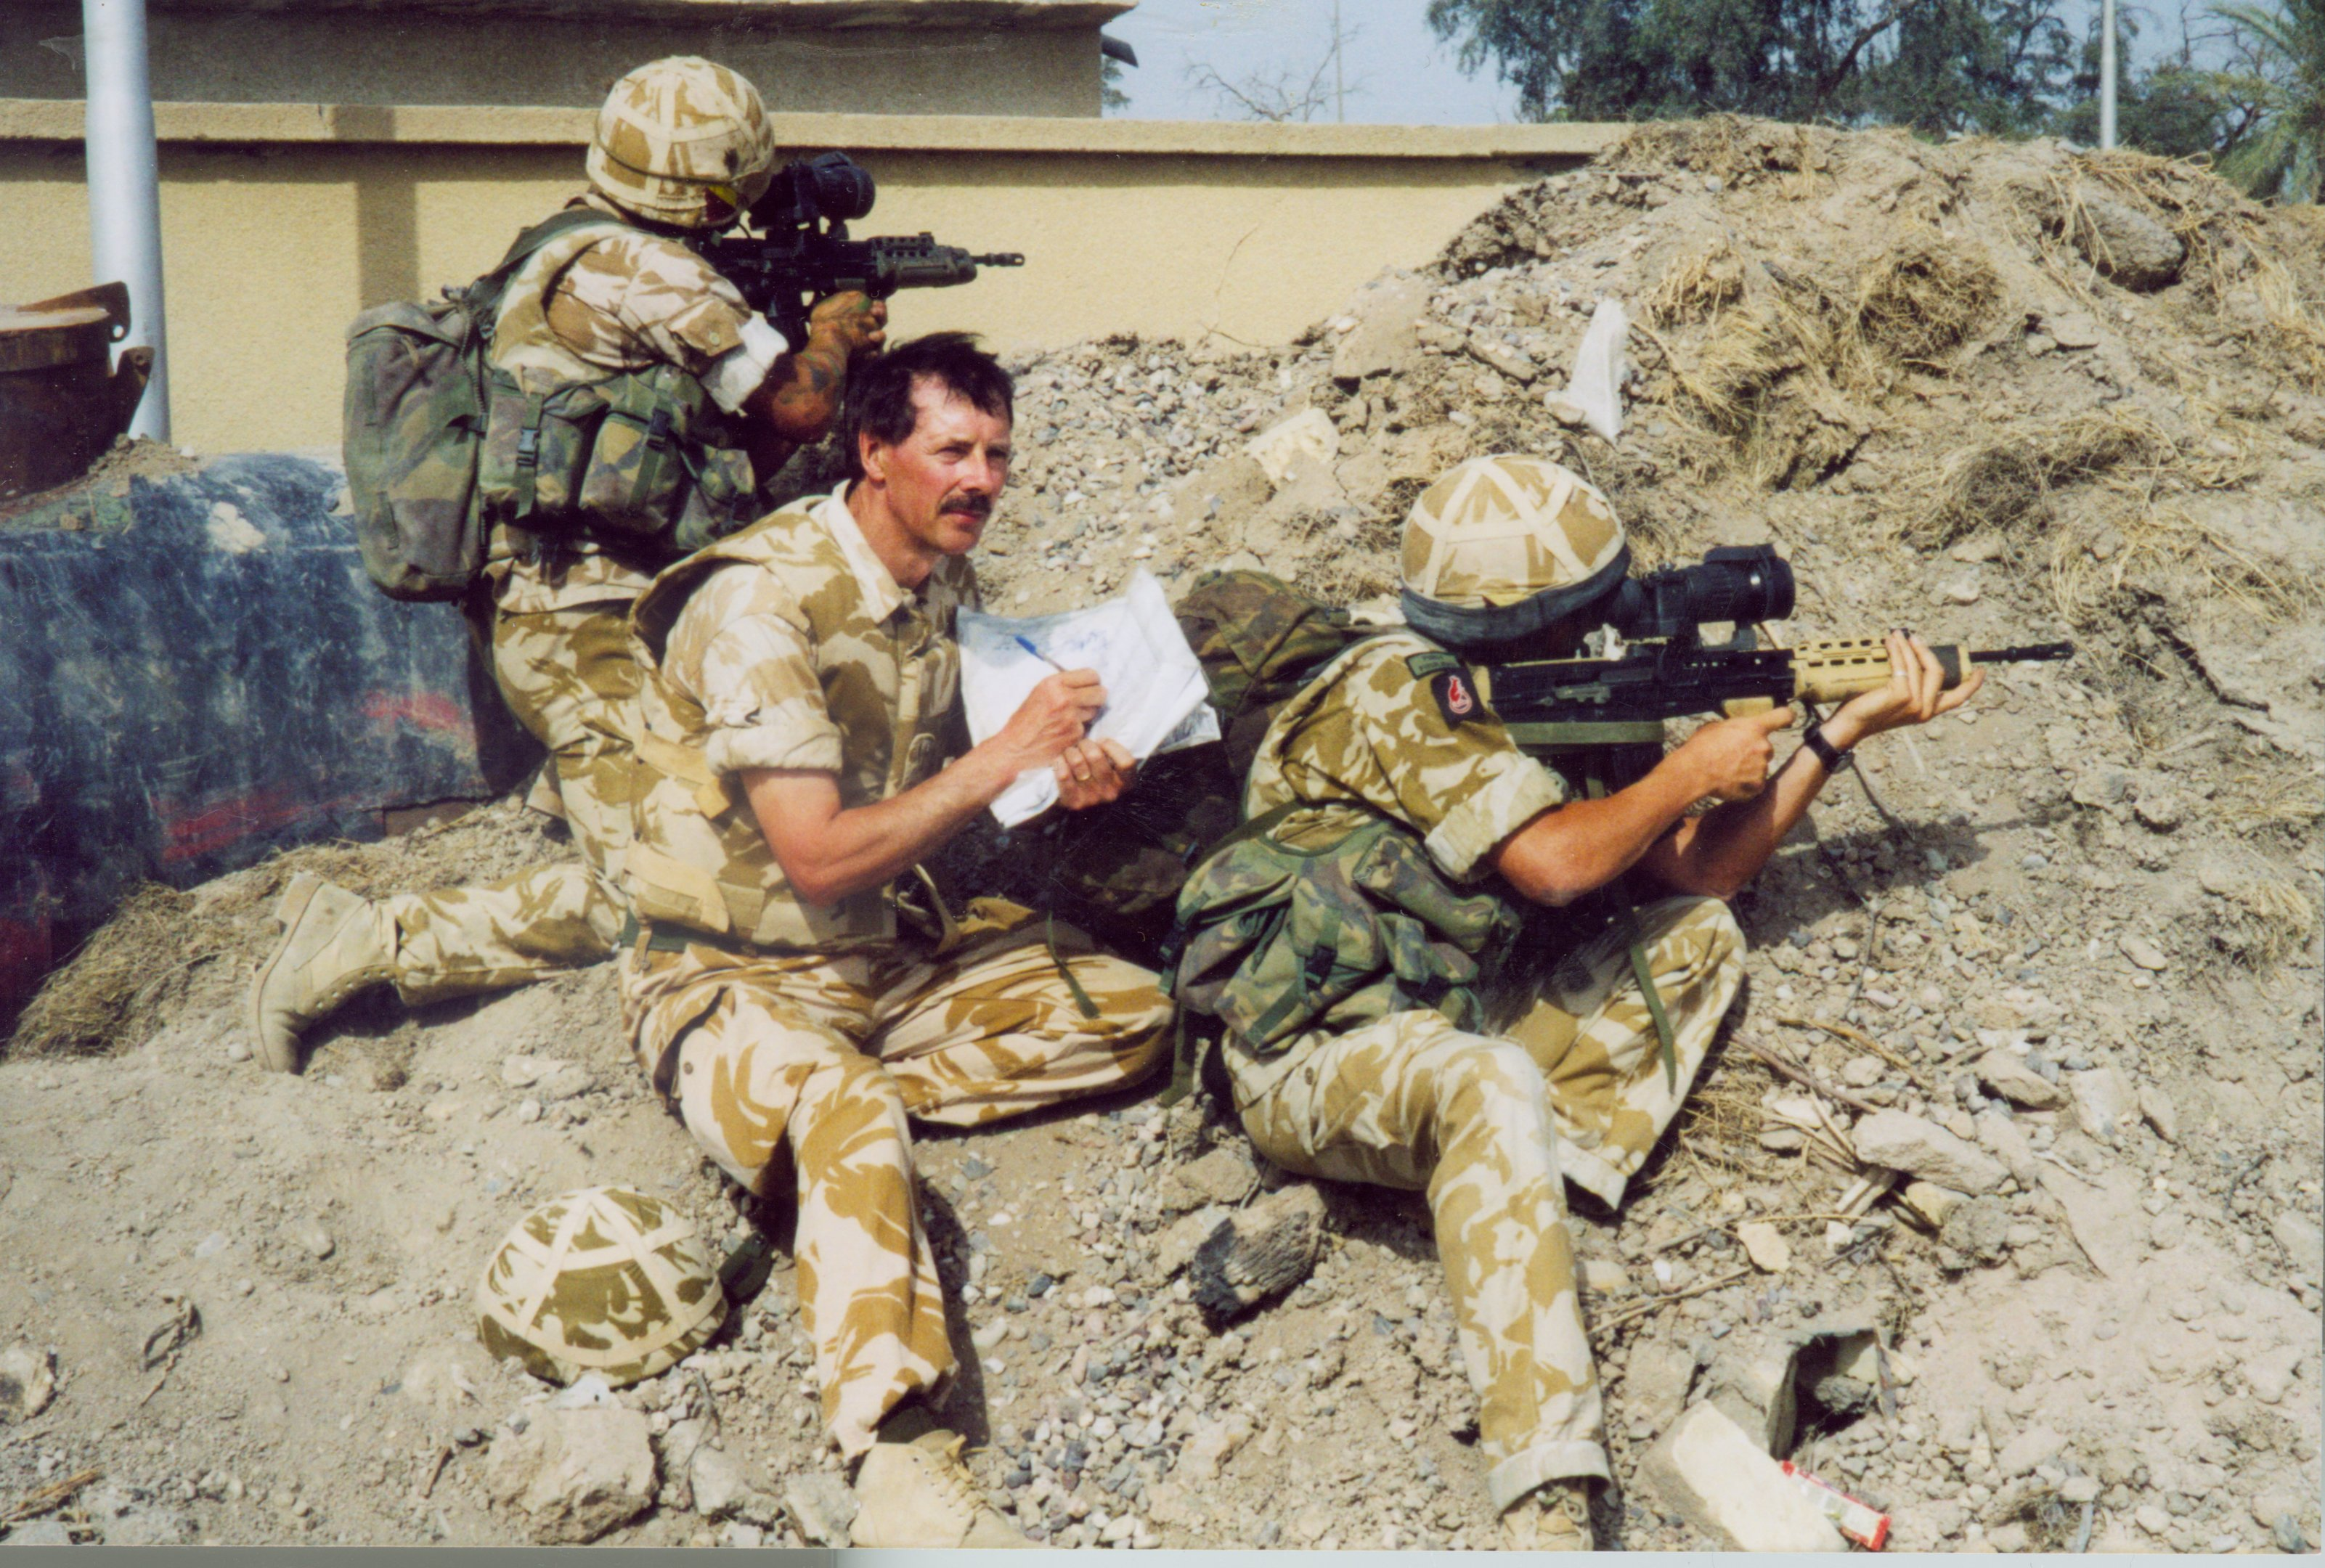 David Rowlands sketches while on patrol in Basra.